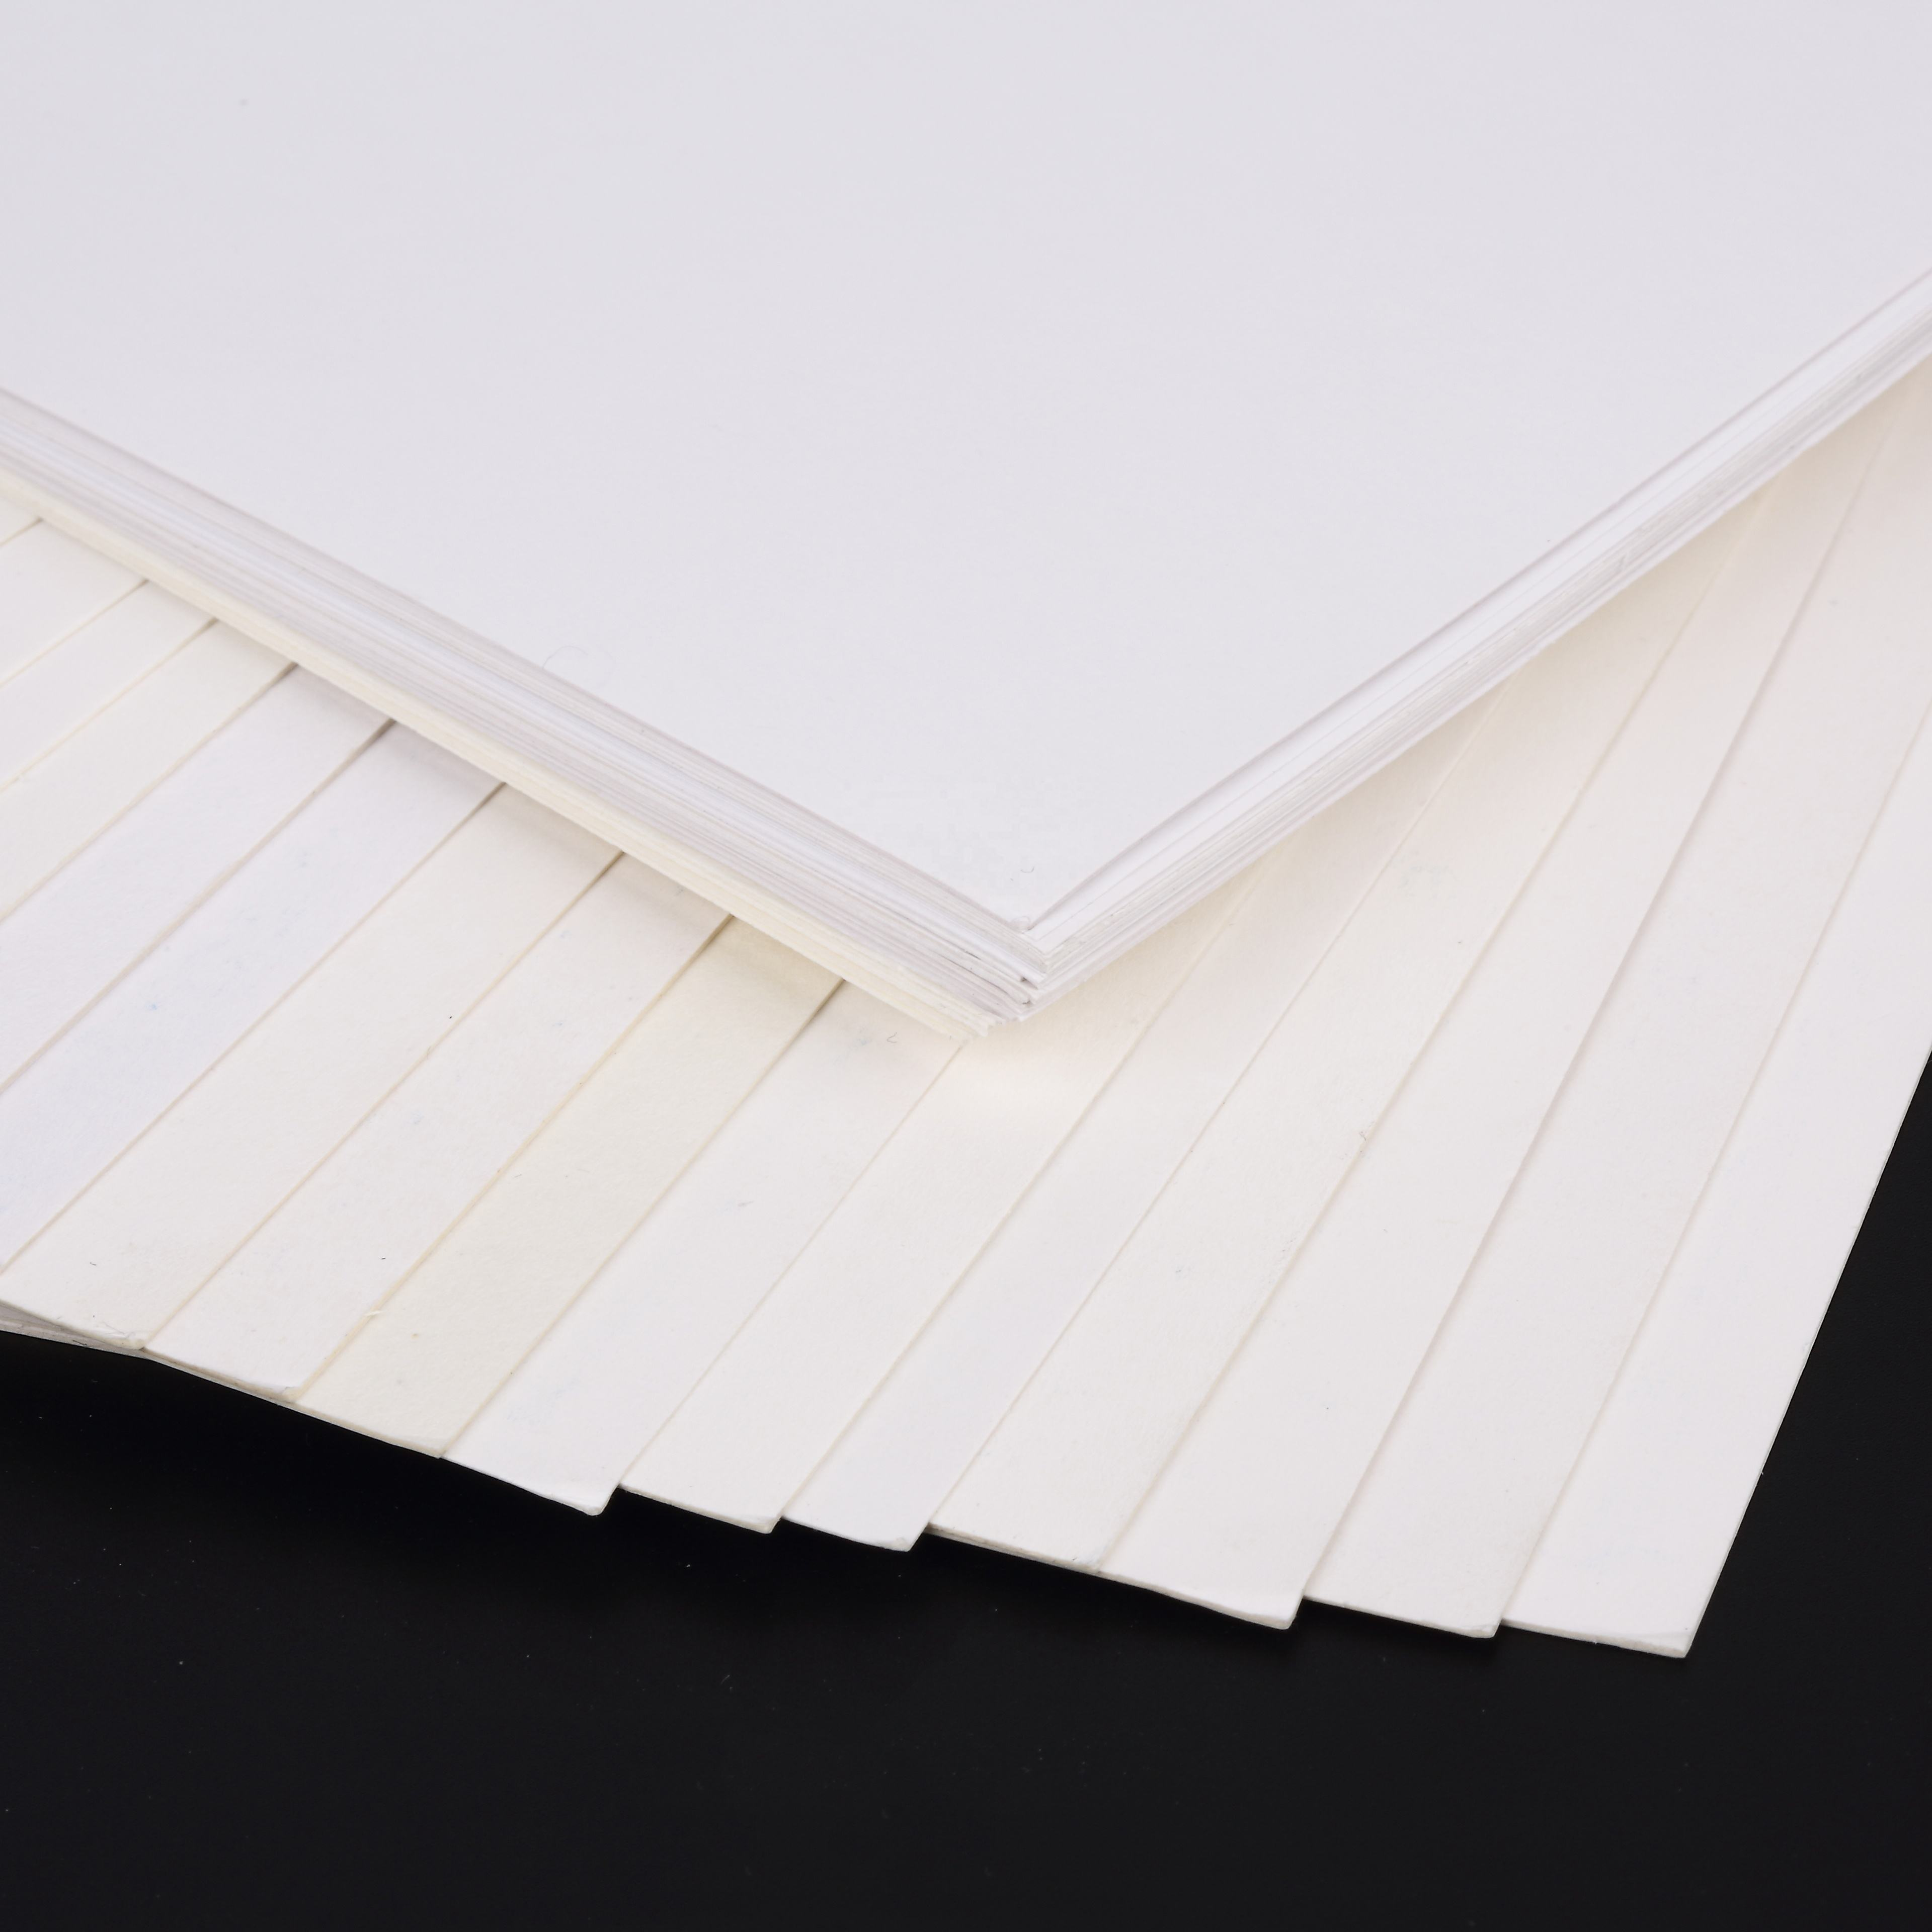 300gsm 350gsm 400gsm Single Side C1s Coated Ivory Board Paper In Rolls Sheets